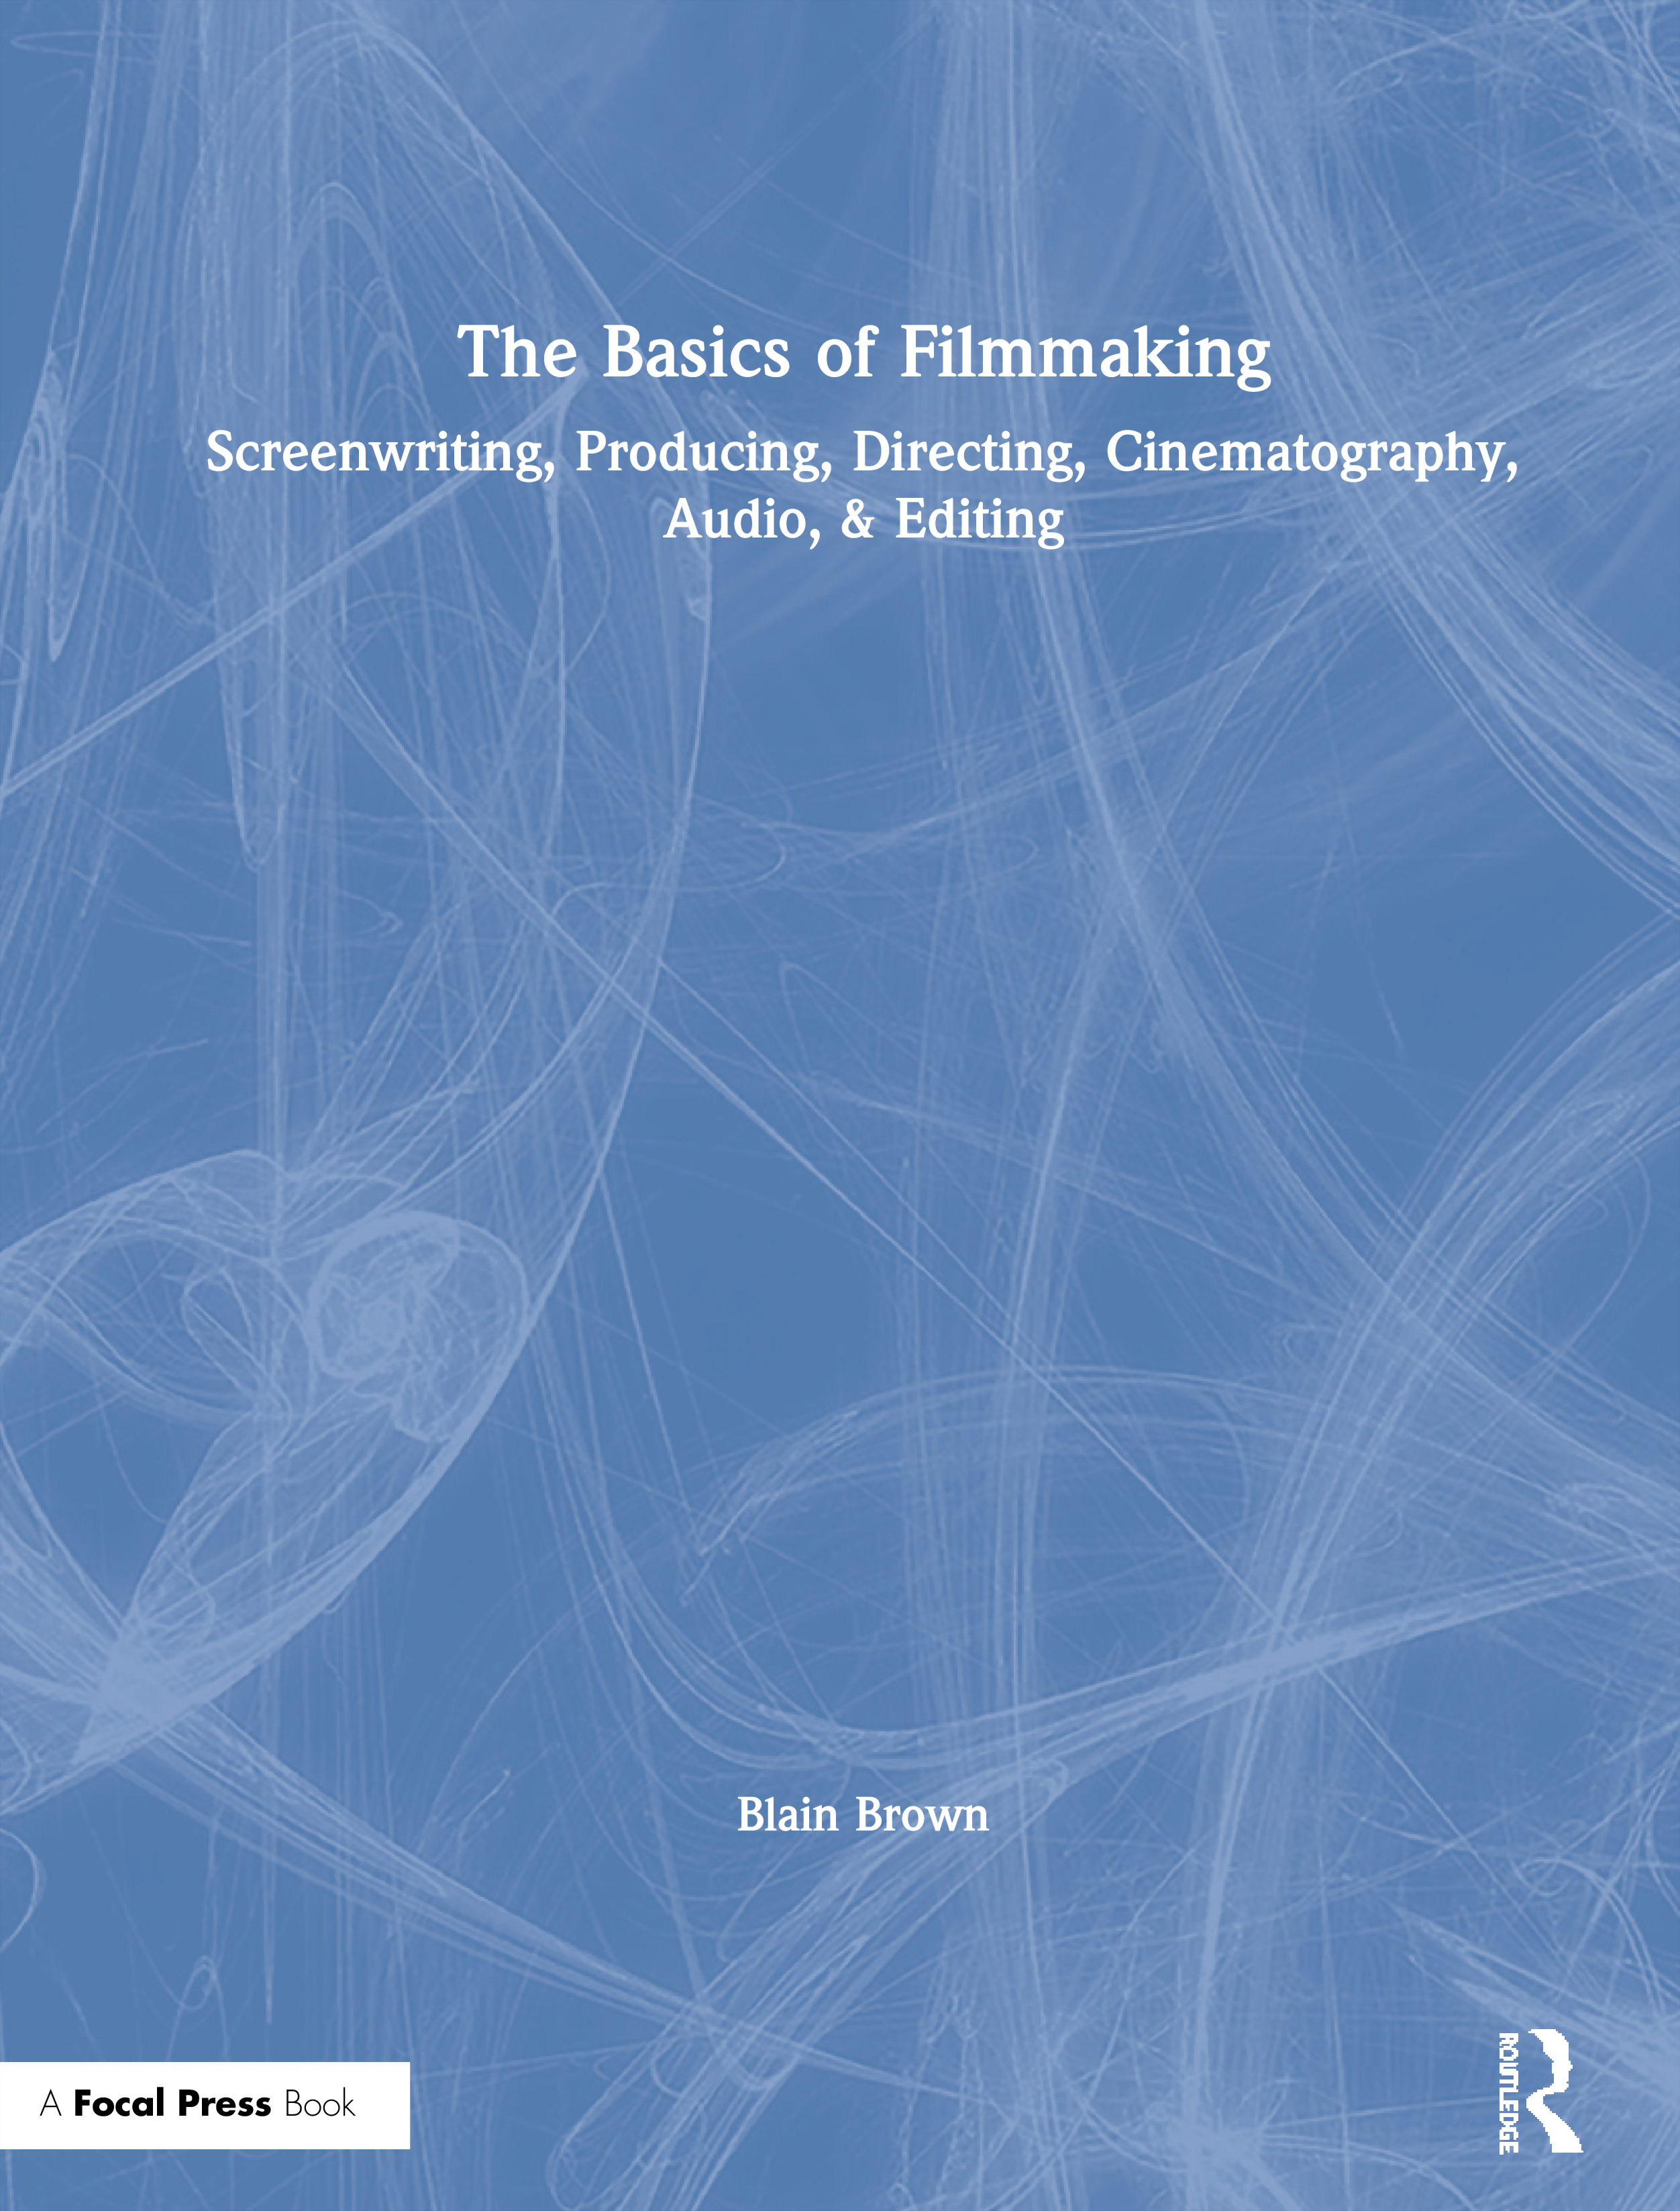 The Basics of Filmmaking: Screenwriting, Producing, Directing, Cinematography, Audio, & Editing book cover